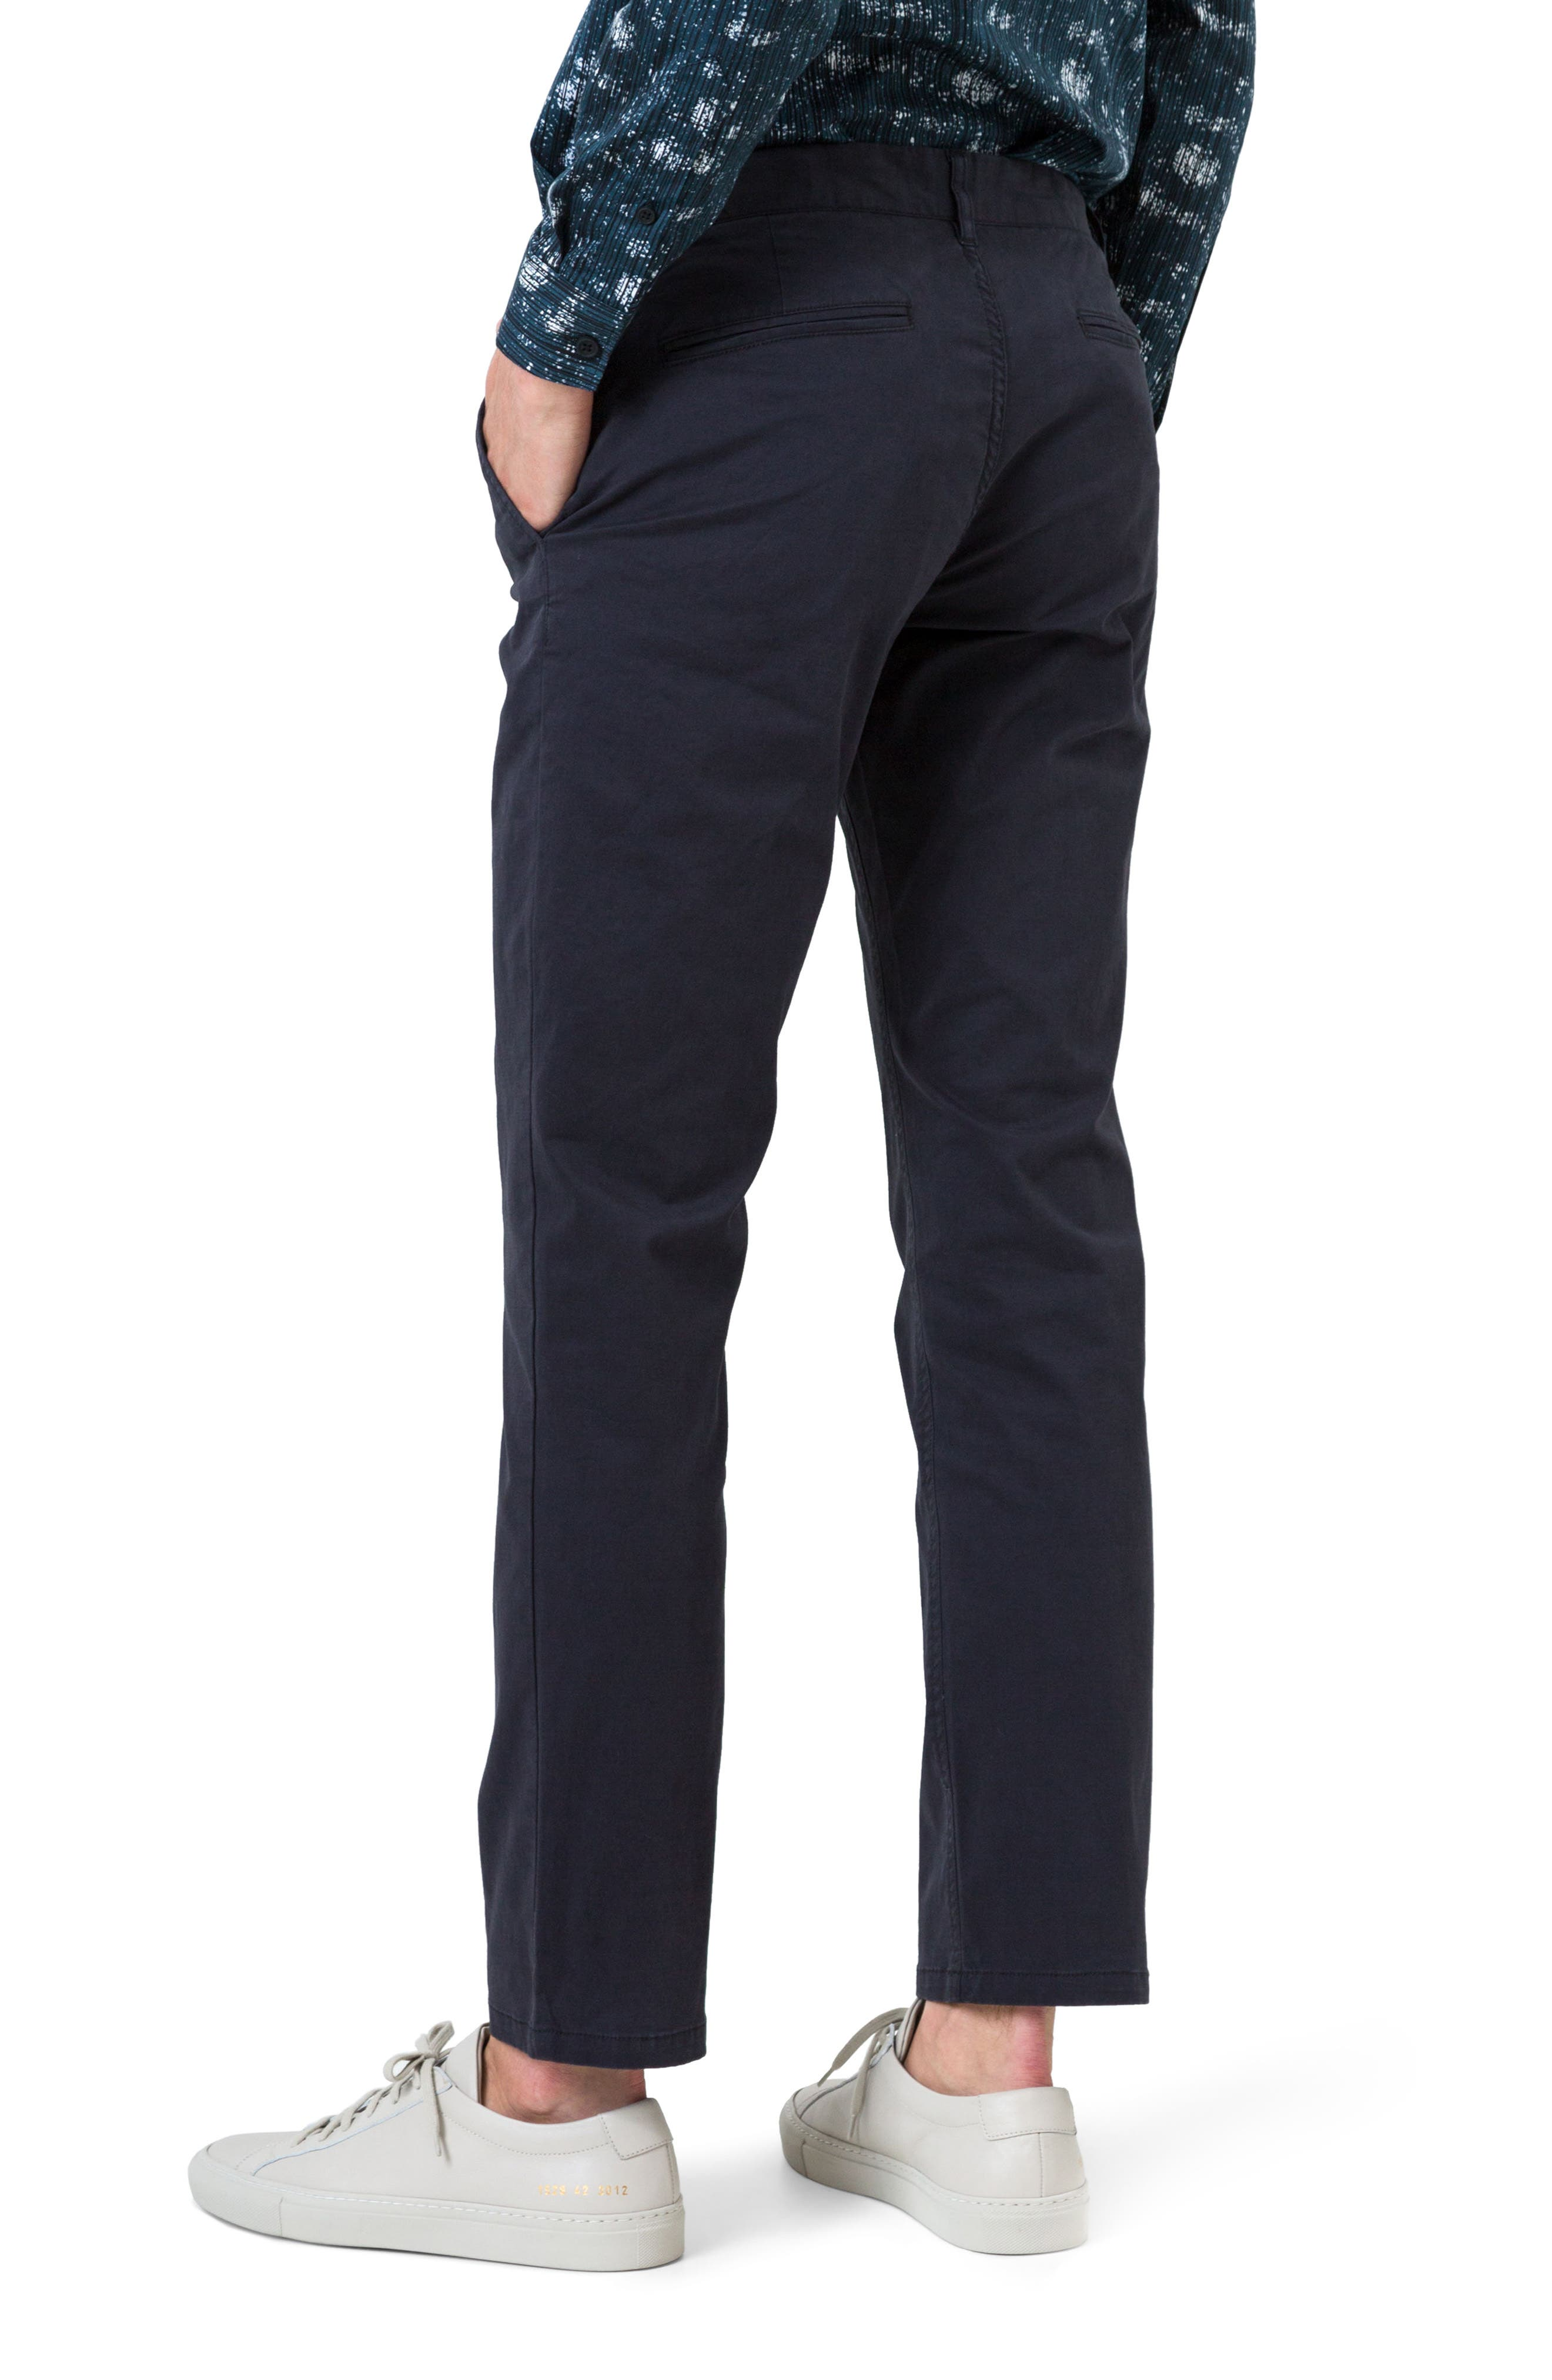 Voyage Slim Fit Chinos,                             Alternate thumbnail 2, color,                             Navy